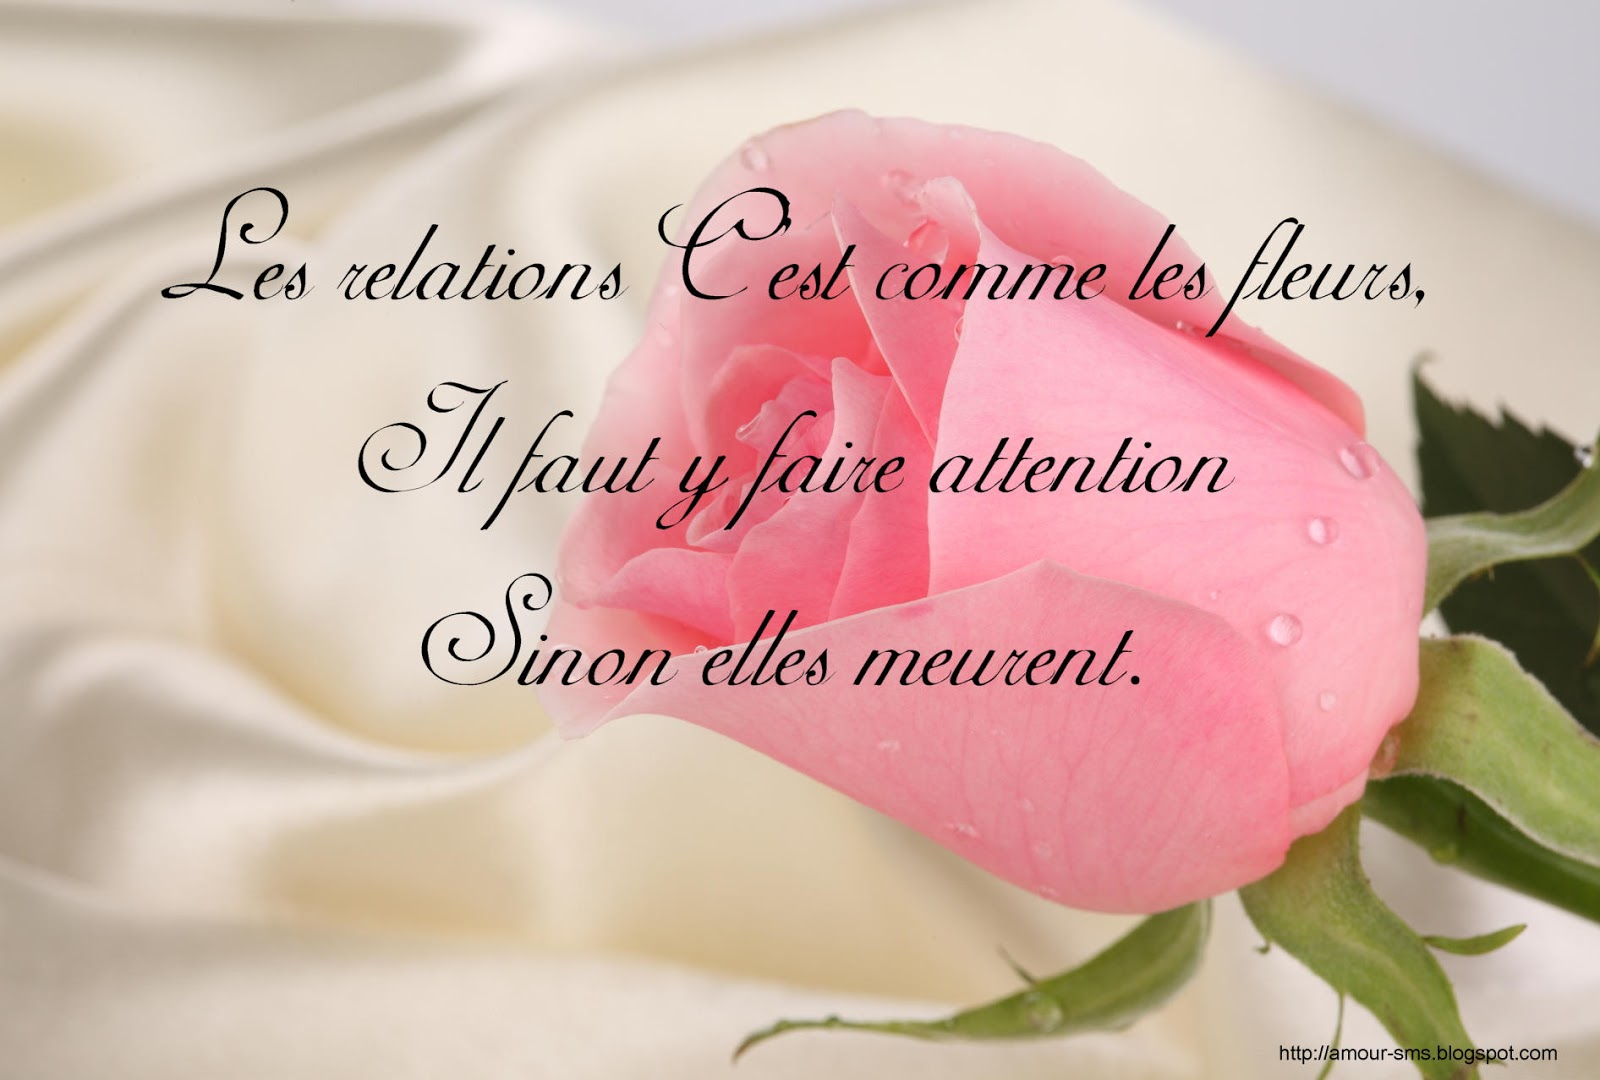 Message d'amour: Proverbes et citations d'amour en images